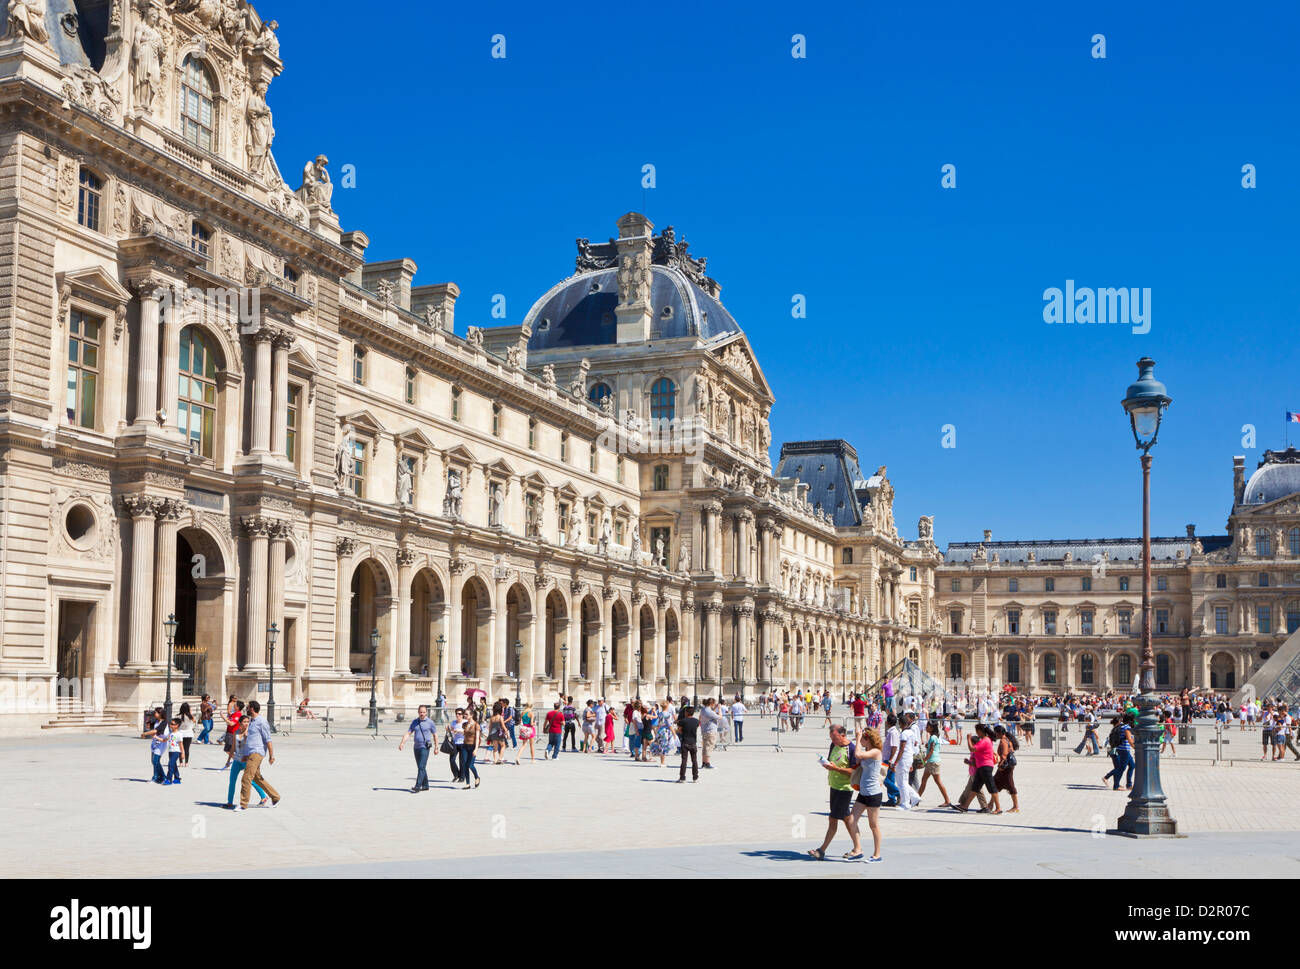 Tourists at The Louvre art gallery and Museum, Paris, France, Europe - Stock Image